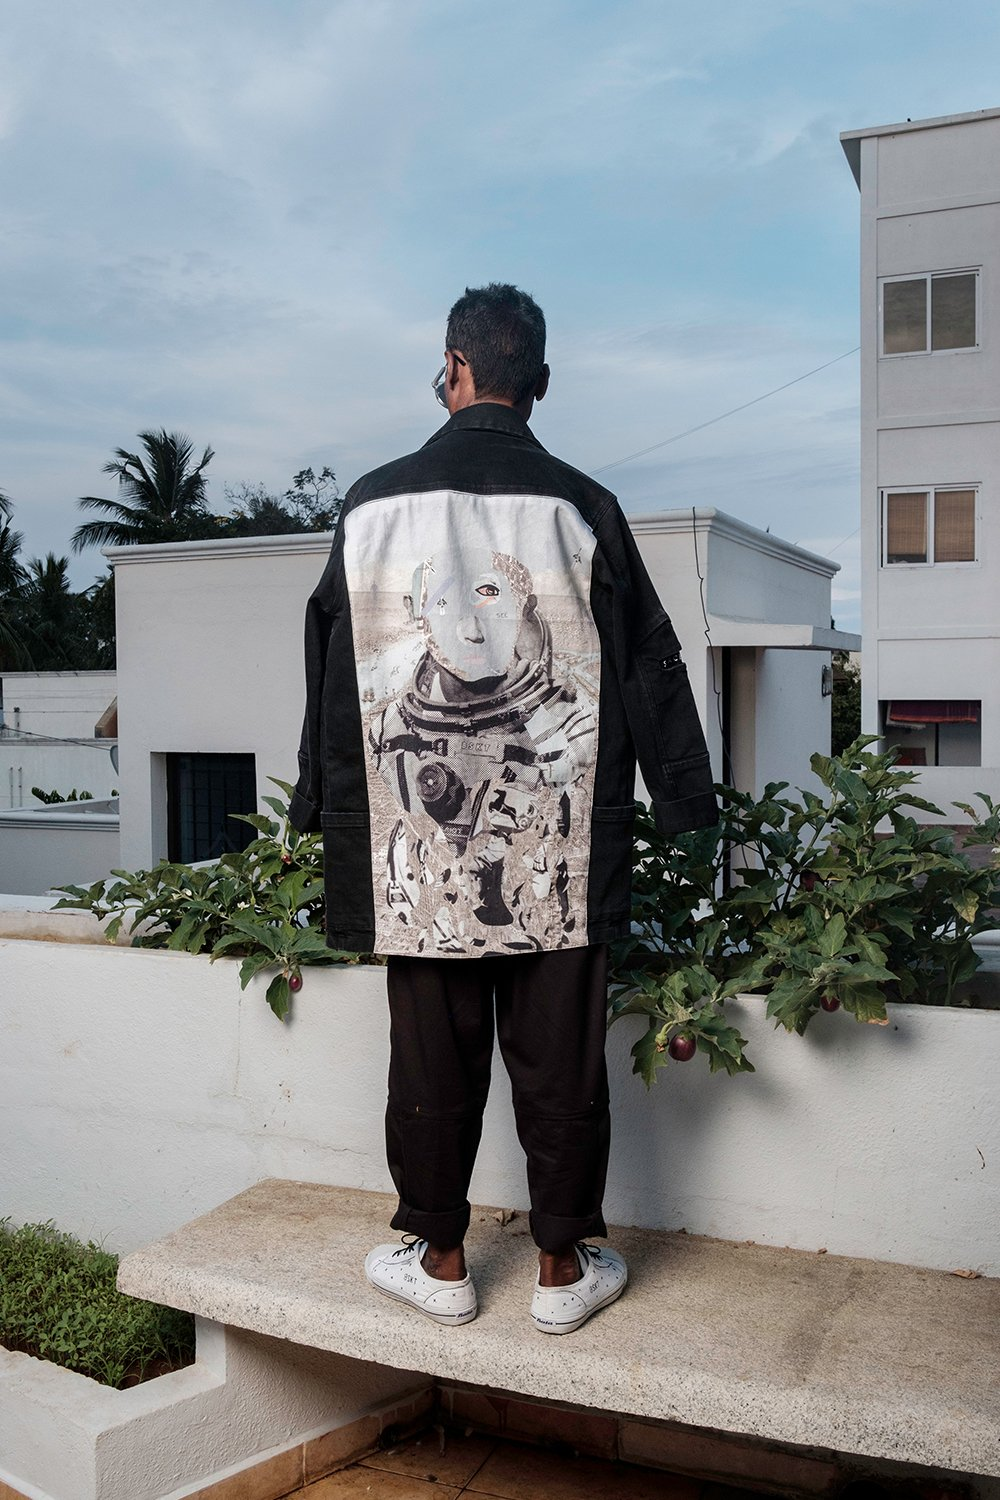 Unisex Functional Black Denim Jacket with multiple front pockets, SPACED OUT label on sleeve, and Rakesh Sharma Astro Print on Back Panel. Gender Neutral fit. Exploring the boundaries of art and design.